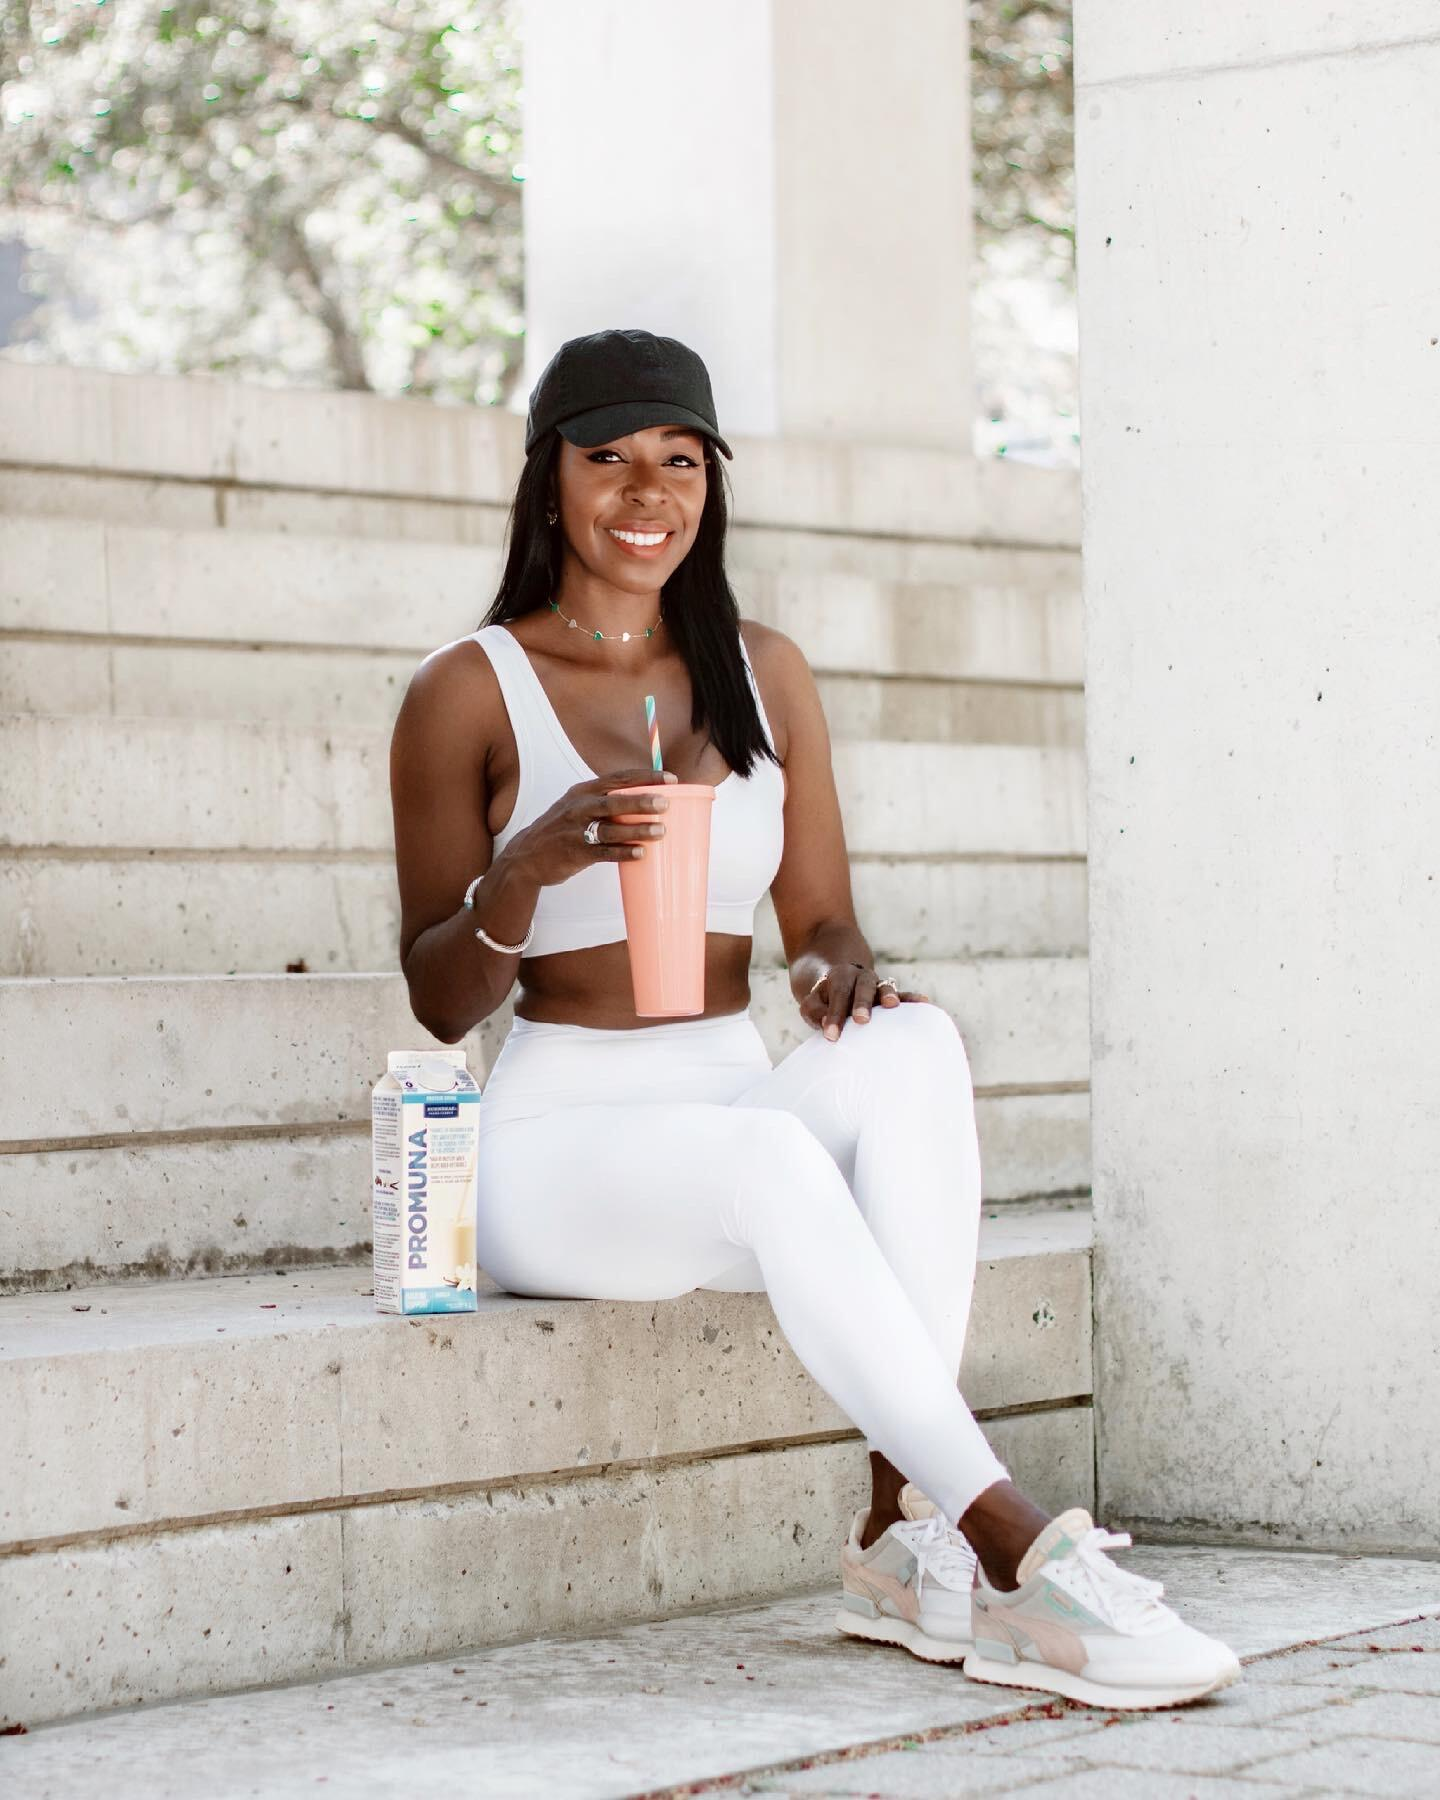 Dominique Baker Drinking Promuna Smoothie